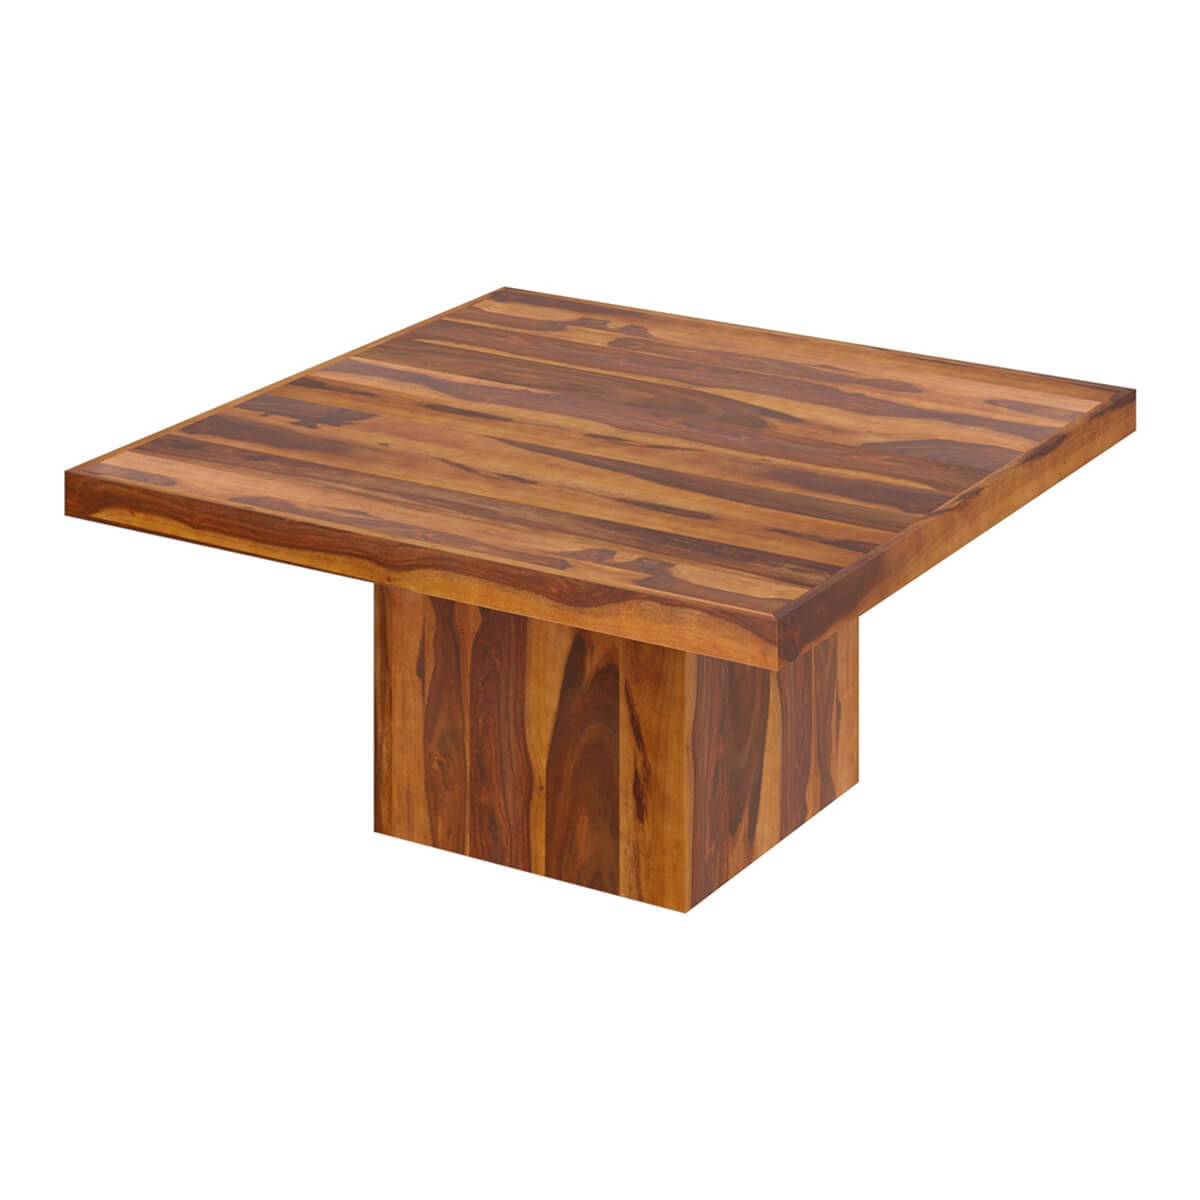 Solid wood modern rustic block pedestal square dining for Solid wood dining table